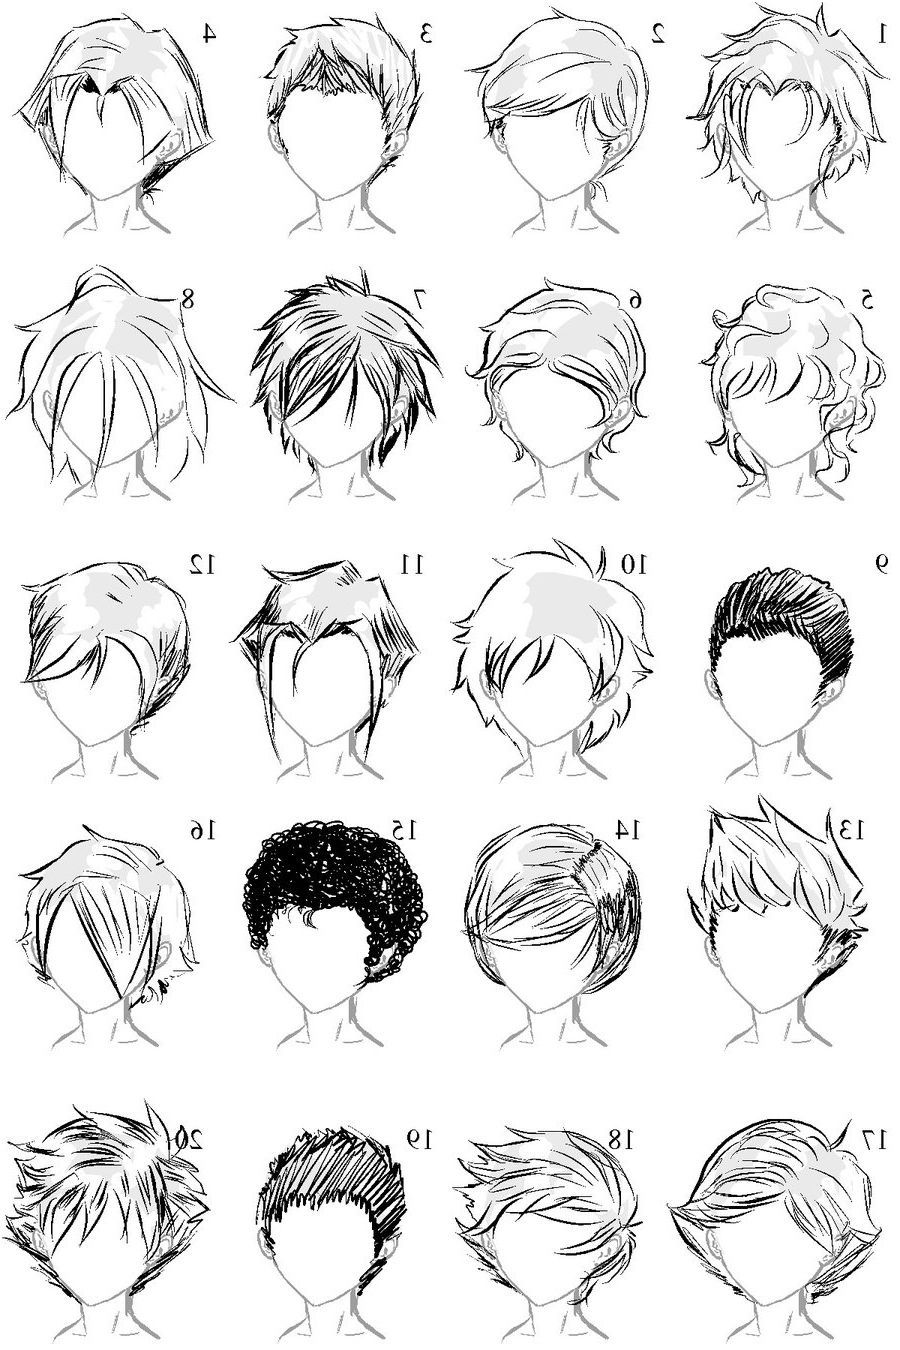 Curly Anime Male Hairstyles Anime Boy Hair Manga Hair Anime Hairstyles Male